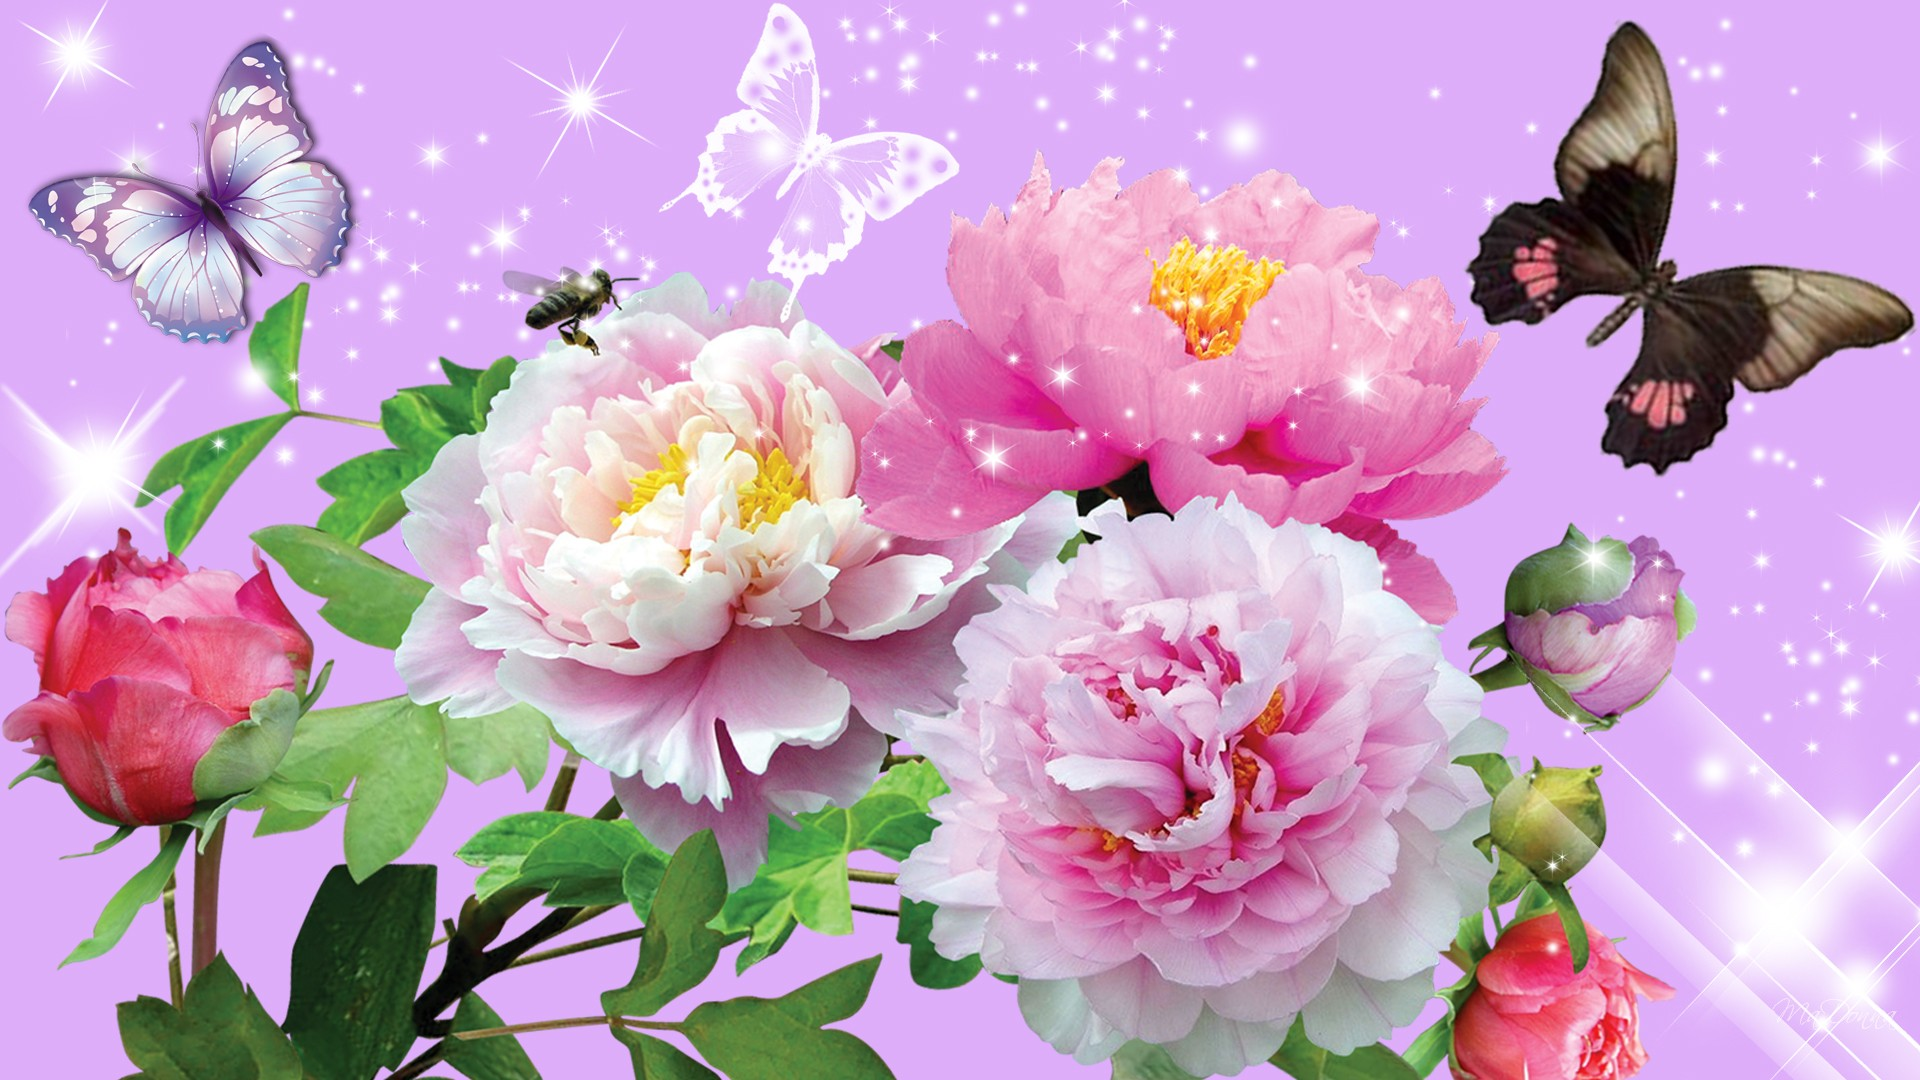 Images Of Flowers Pink Peony 2857.23 Kb